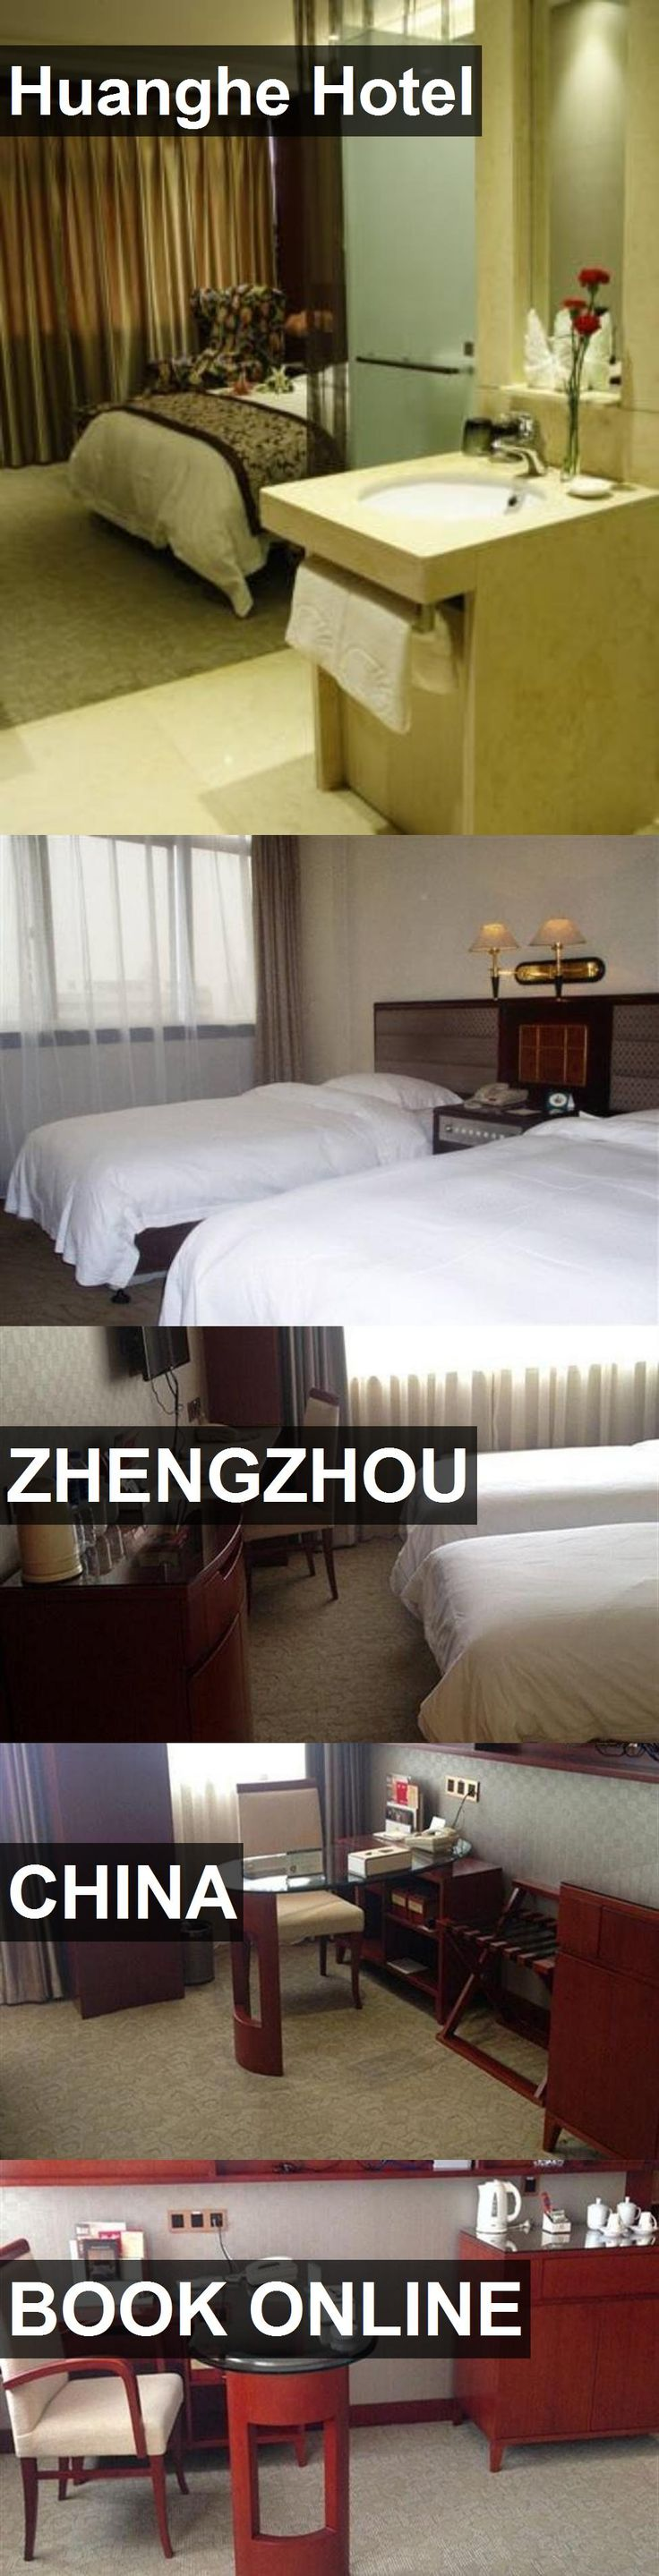 Huanghe Hotel in Zhengzhou, China. For more information, photos, reviews and best prices please follow the link. #China #Zhengzhou #travel #vacation #hotel